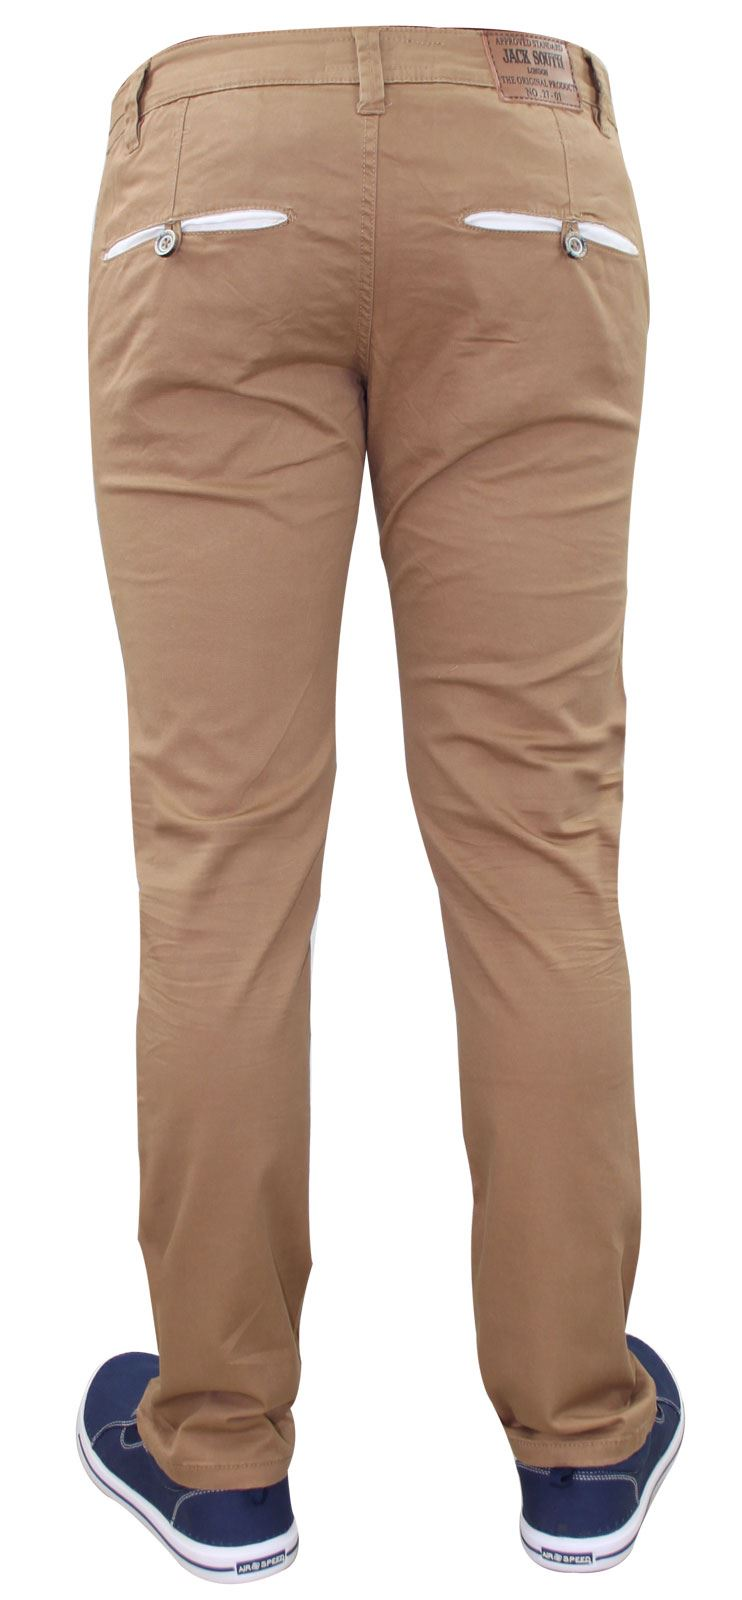 Men-Chinos-Trousers-Regular-Fit-Stretch-Cotton-Jeans-Pants-All-Waist-Sizes thumbnail 26